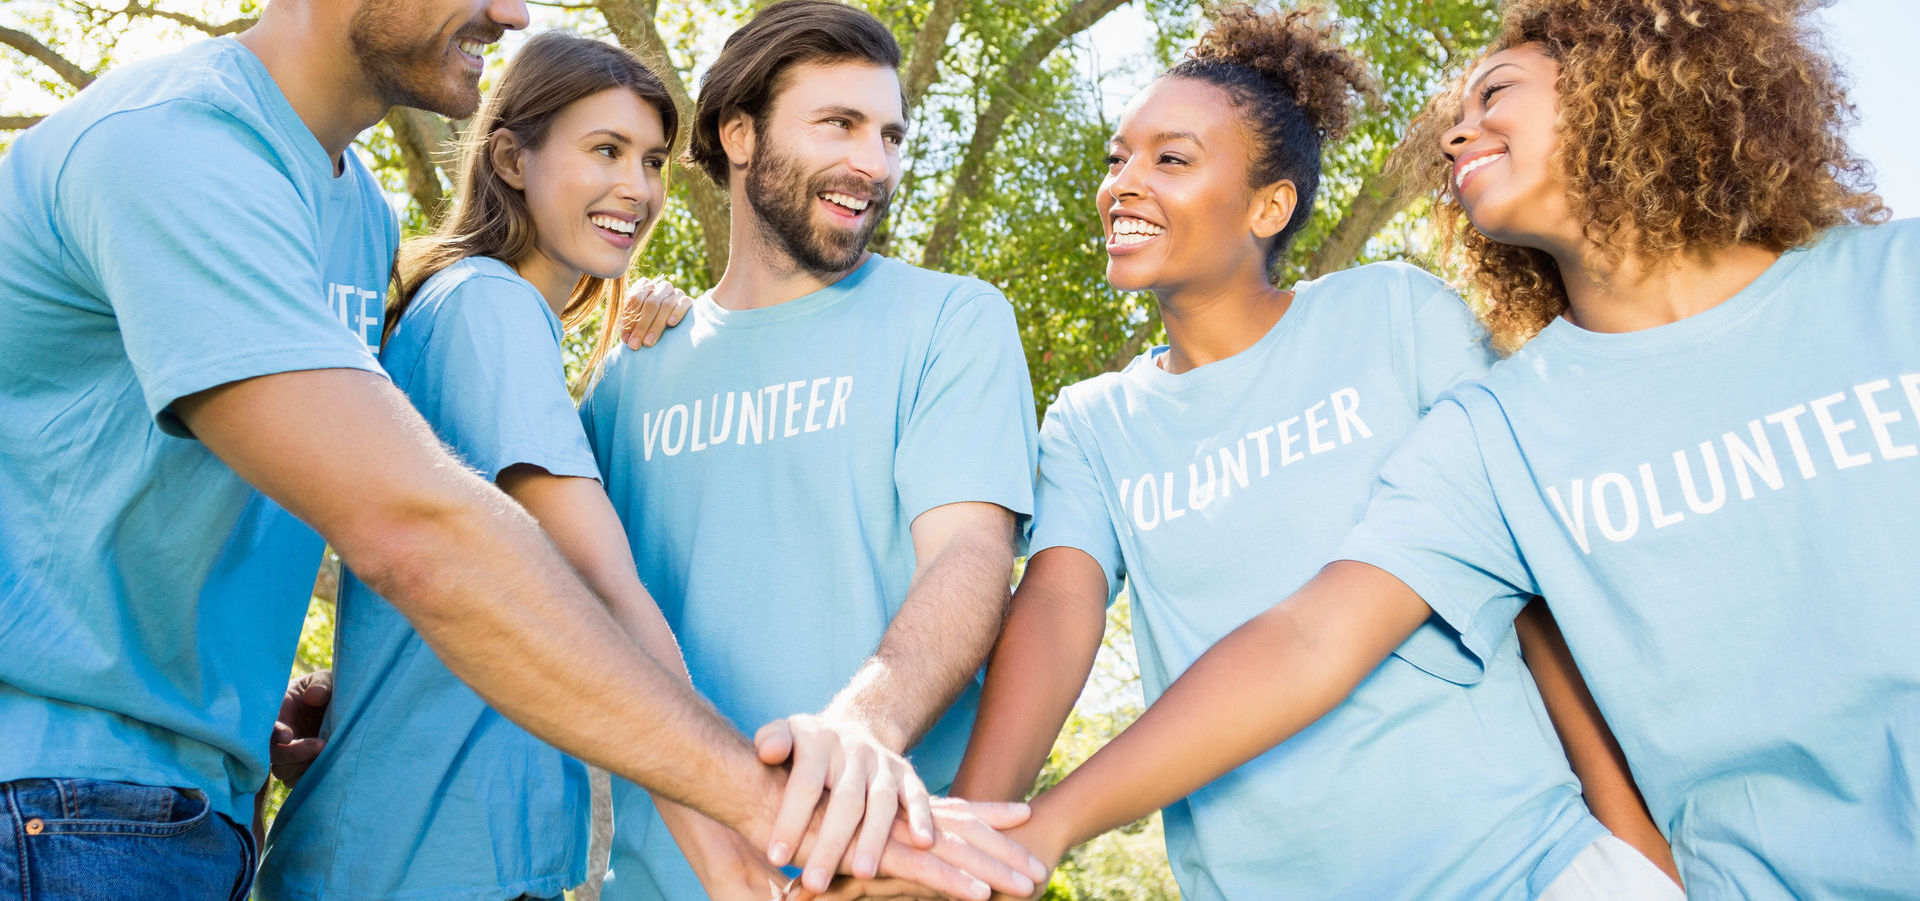 9 Valuable Lessons for Marketing Nonprofit Organizations